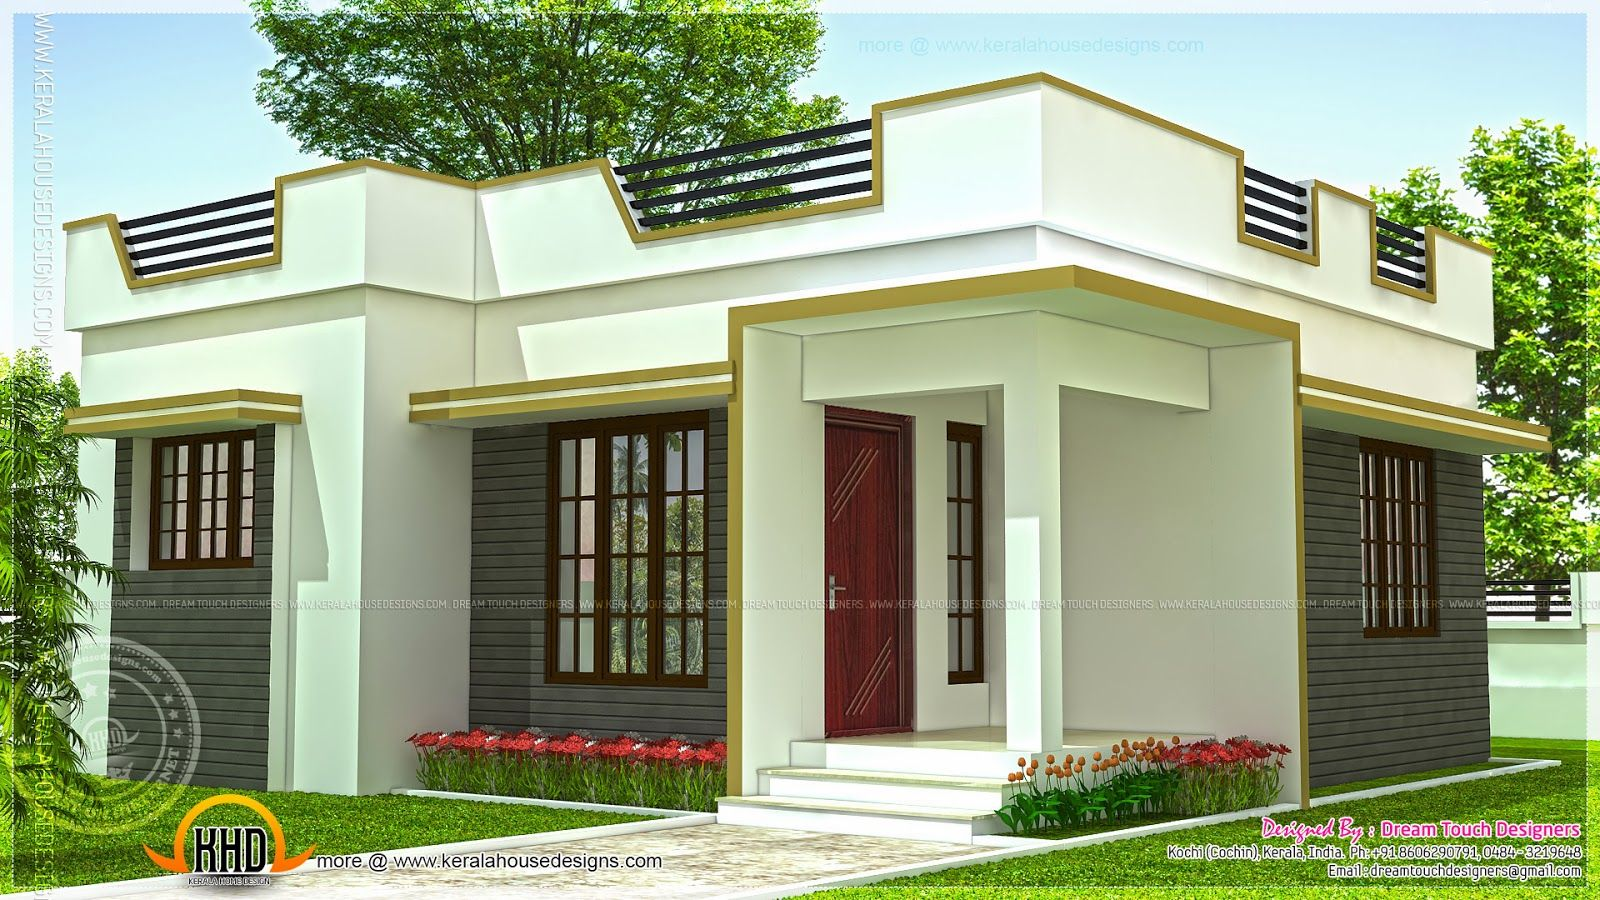 Lately 21 small house design kerala small house 1600 900 best house pinterest Gorgeous small bedroom designs for indian homes